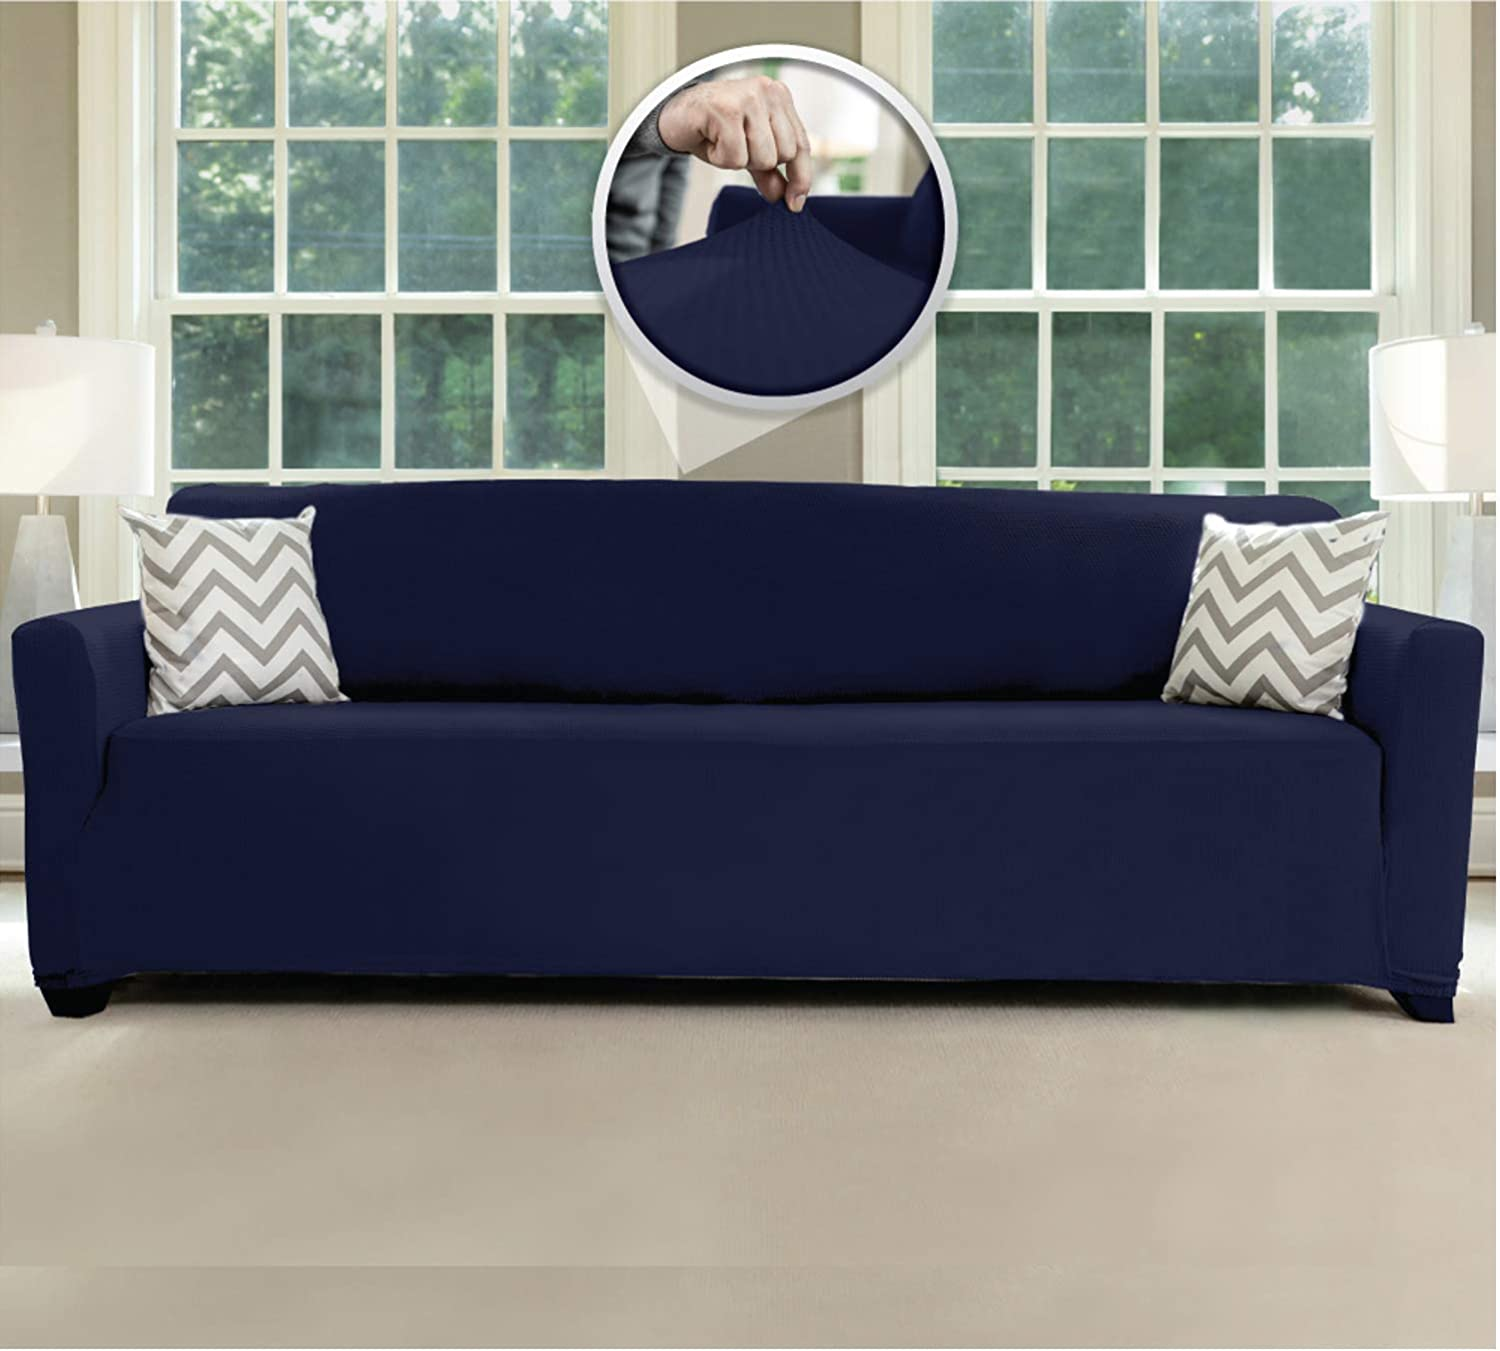 Sofa Shield Original Fitted 1 Piece X-Large Oversized Sofa Protector, Many Colors, Seat Width to 78 Inch, Stretchy Furniture Slipcover, Fastener Straps, Spandex Couch Slip Cover for Dogs, Navy Blue